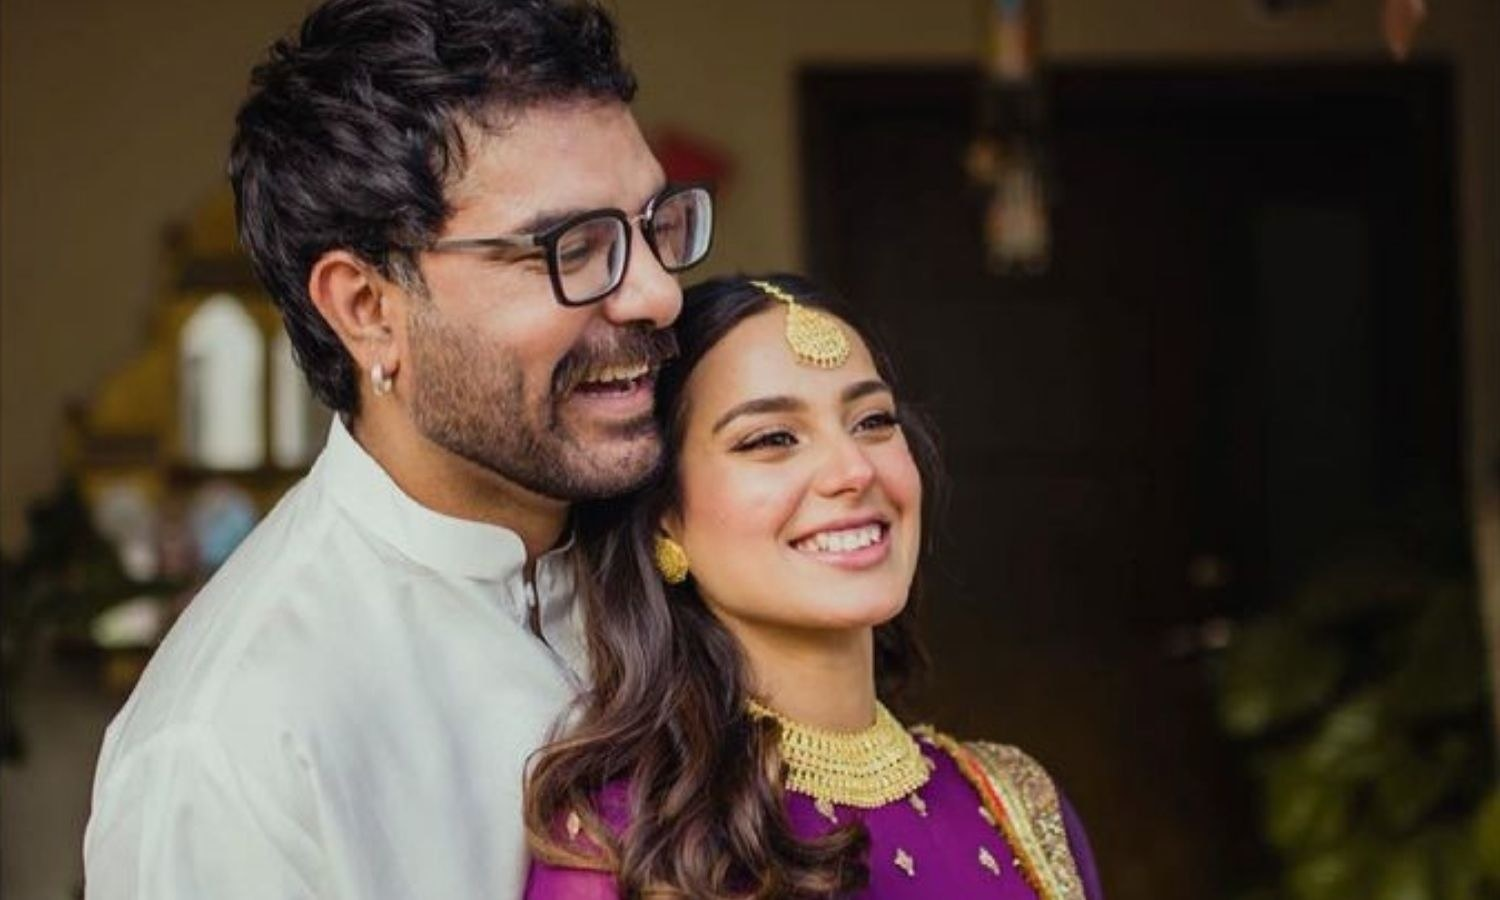 It's a boy for Iqra Aziz and Yasir Hussain